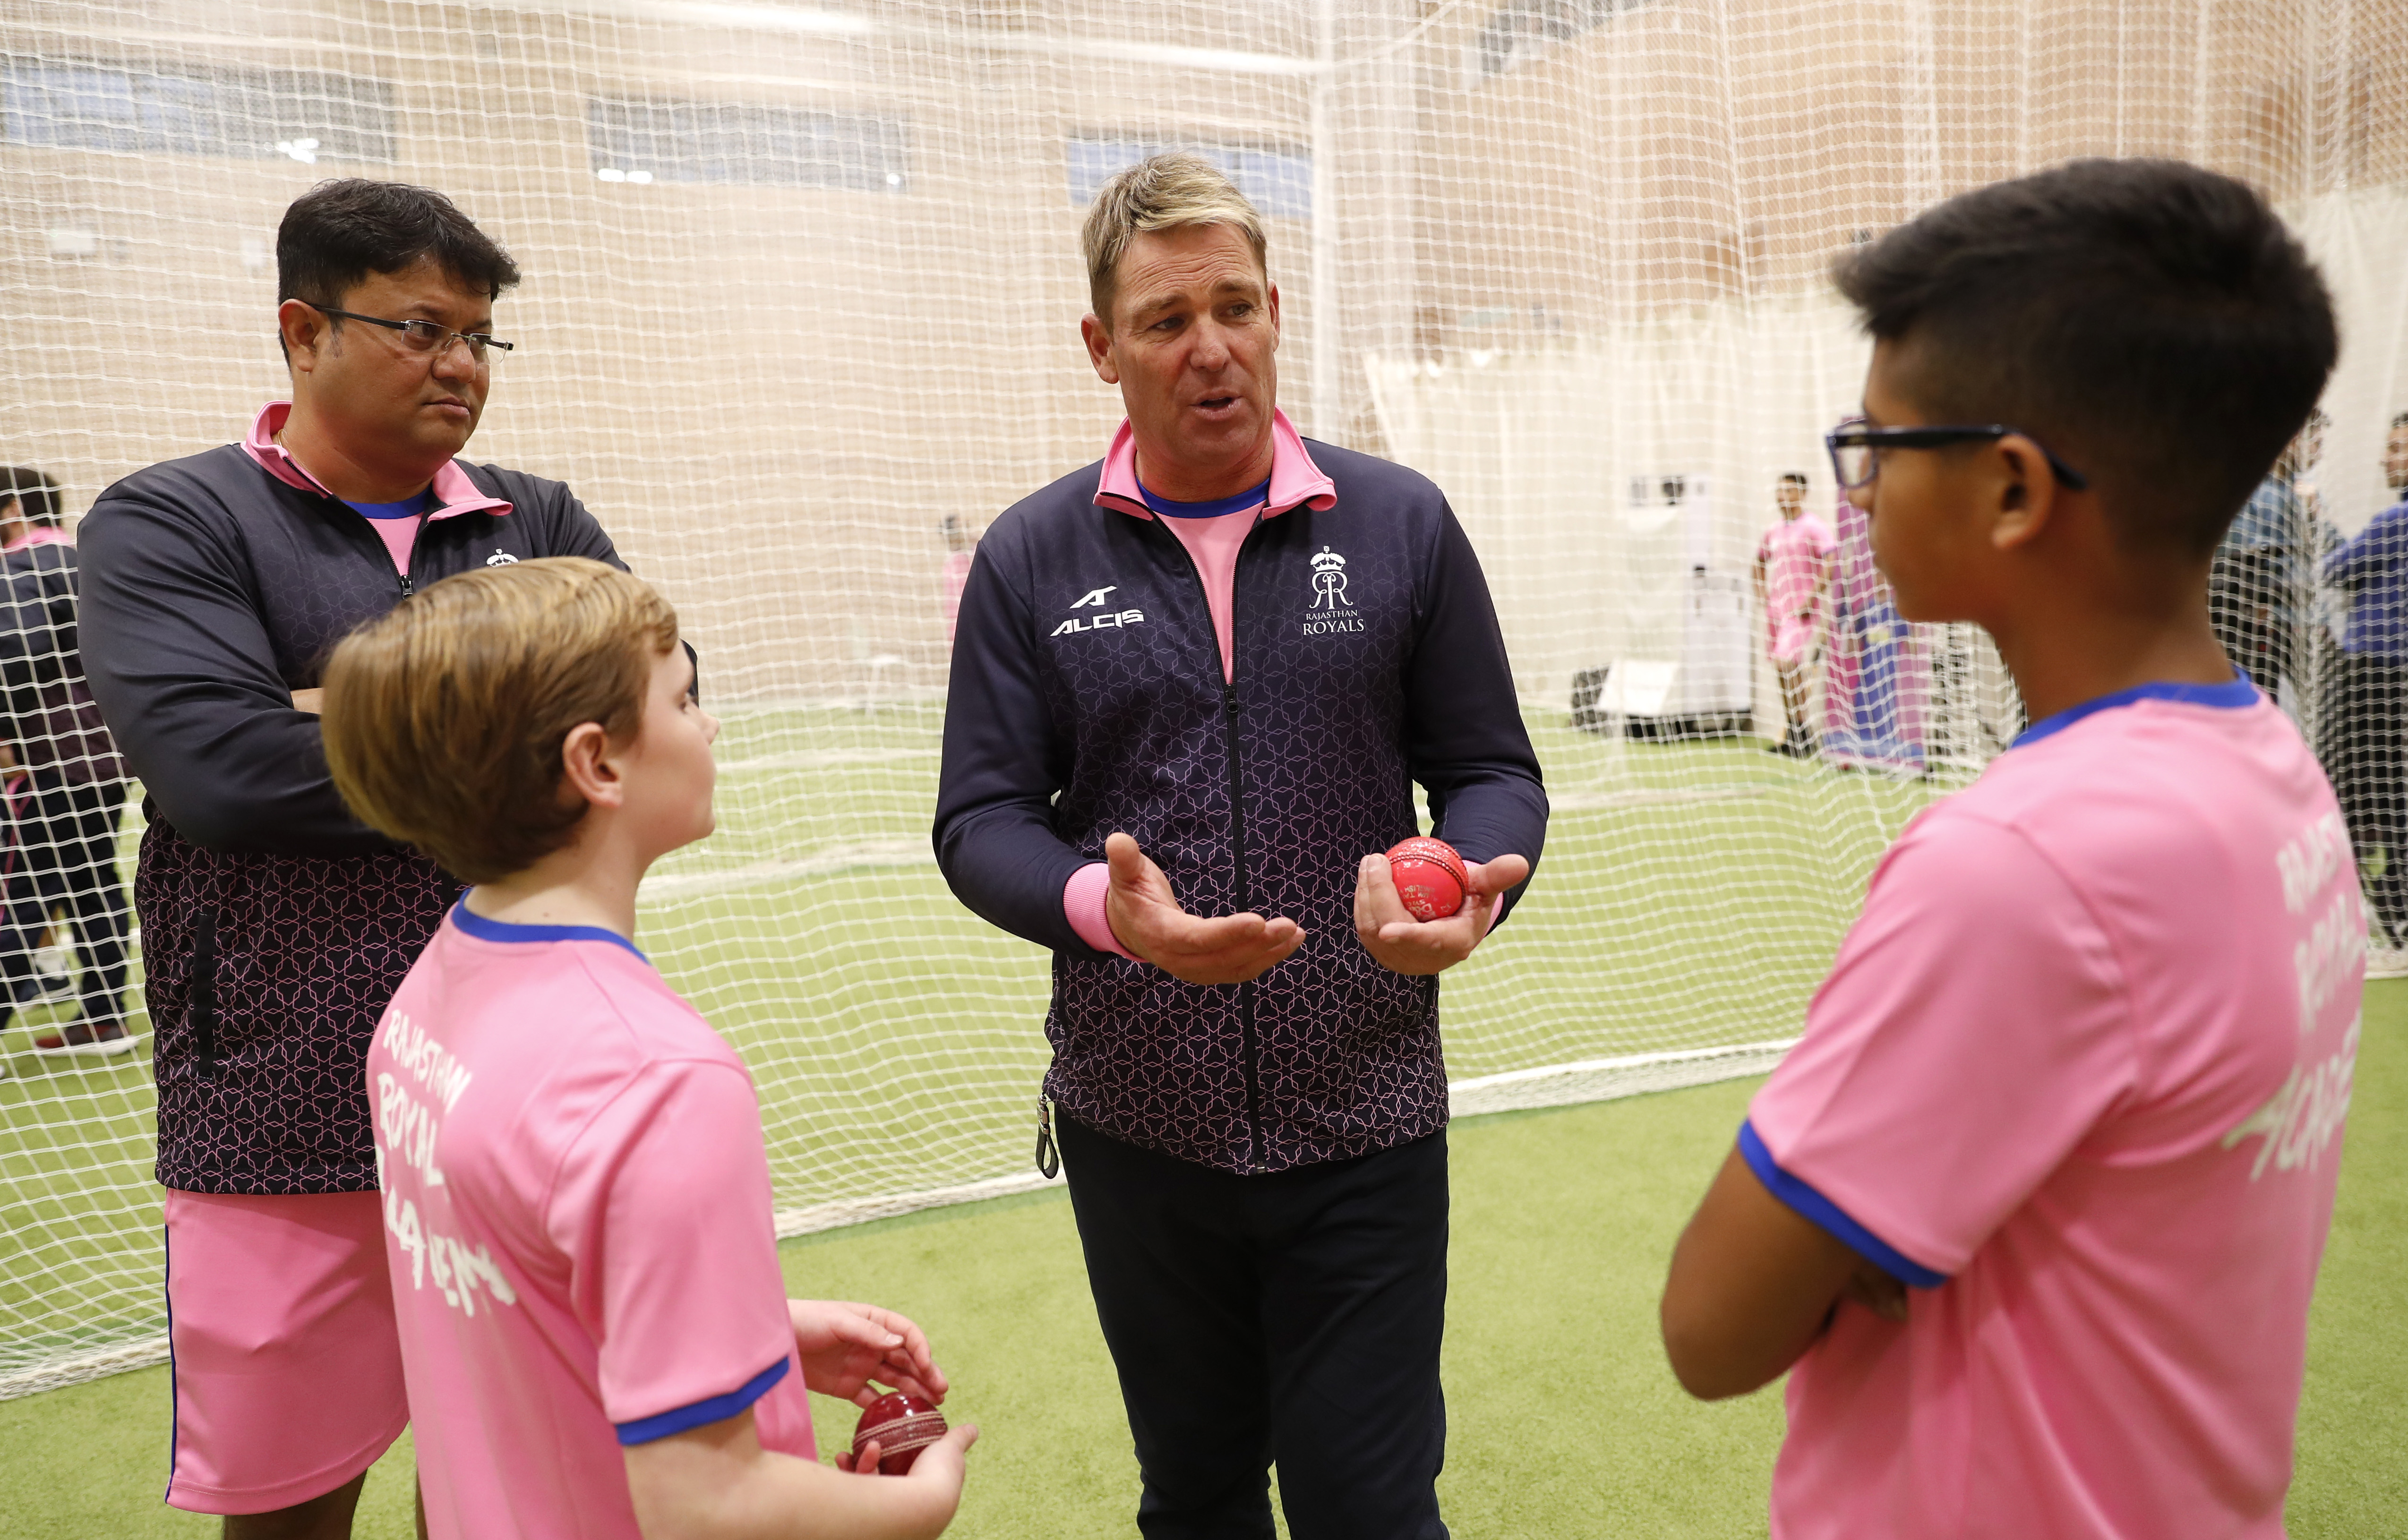 Former Australian and Rajasthan Royals player Shane Warne talks with children from the Rajasthan Royals UK academy on March 18, 2019 in Cobham, England. (Photo by Luke Walker/Getty Images for Rajasthan Royals )